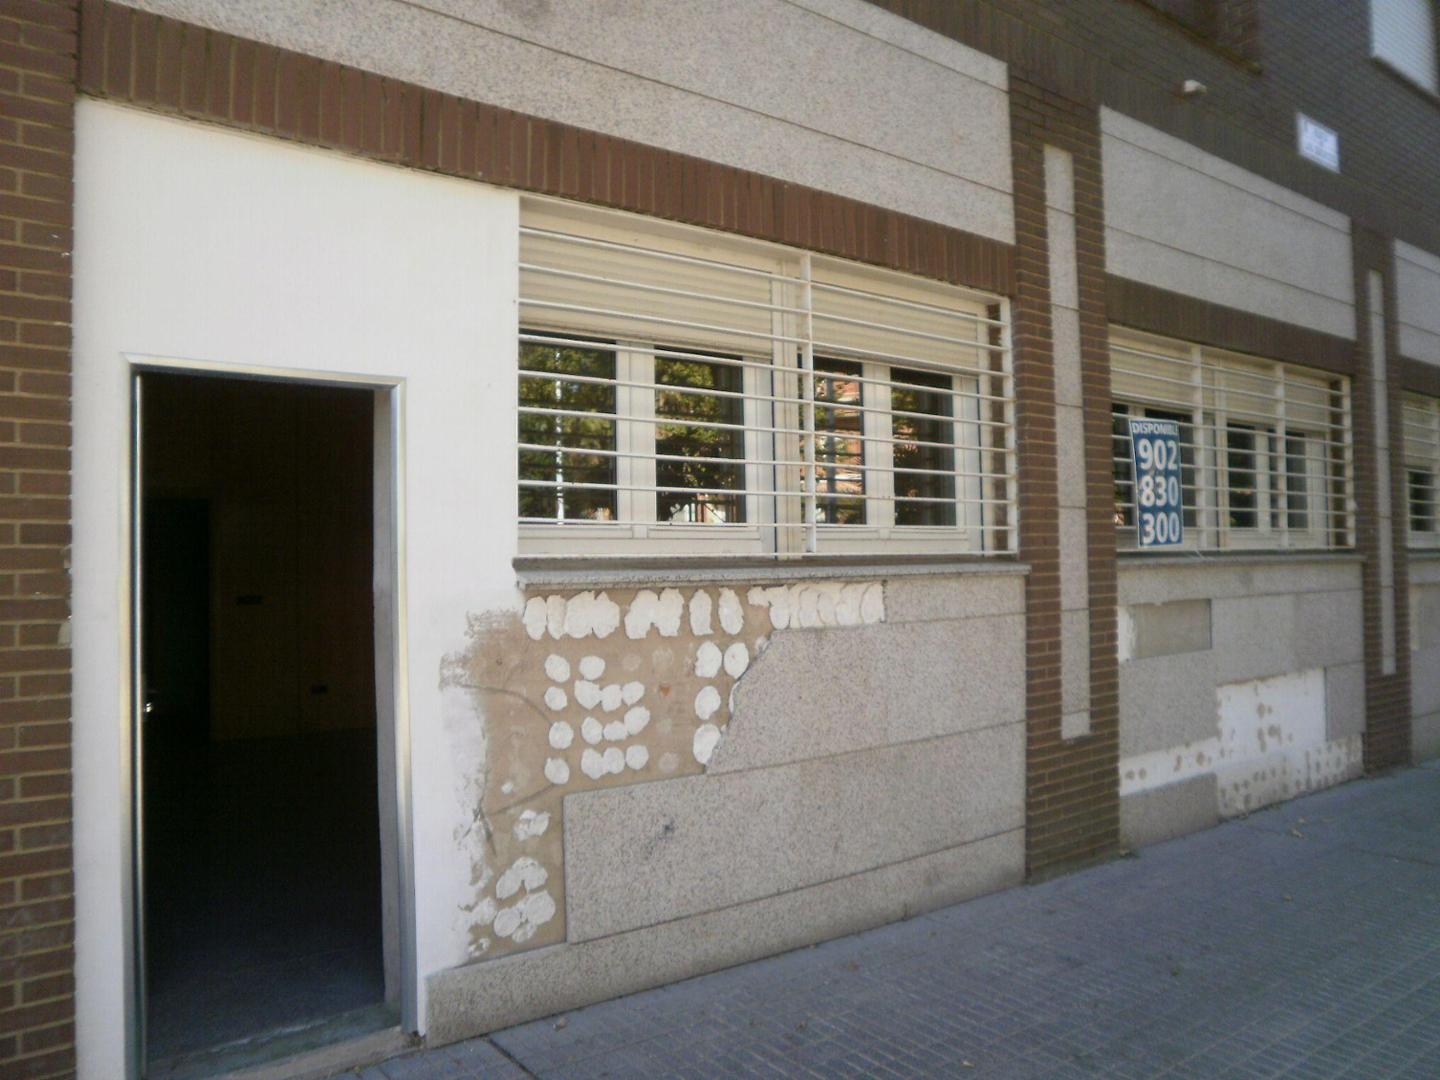 Local Comercial en  Merida, Badajoz Provincia